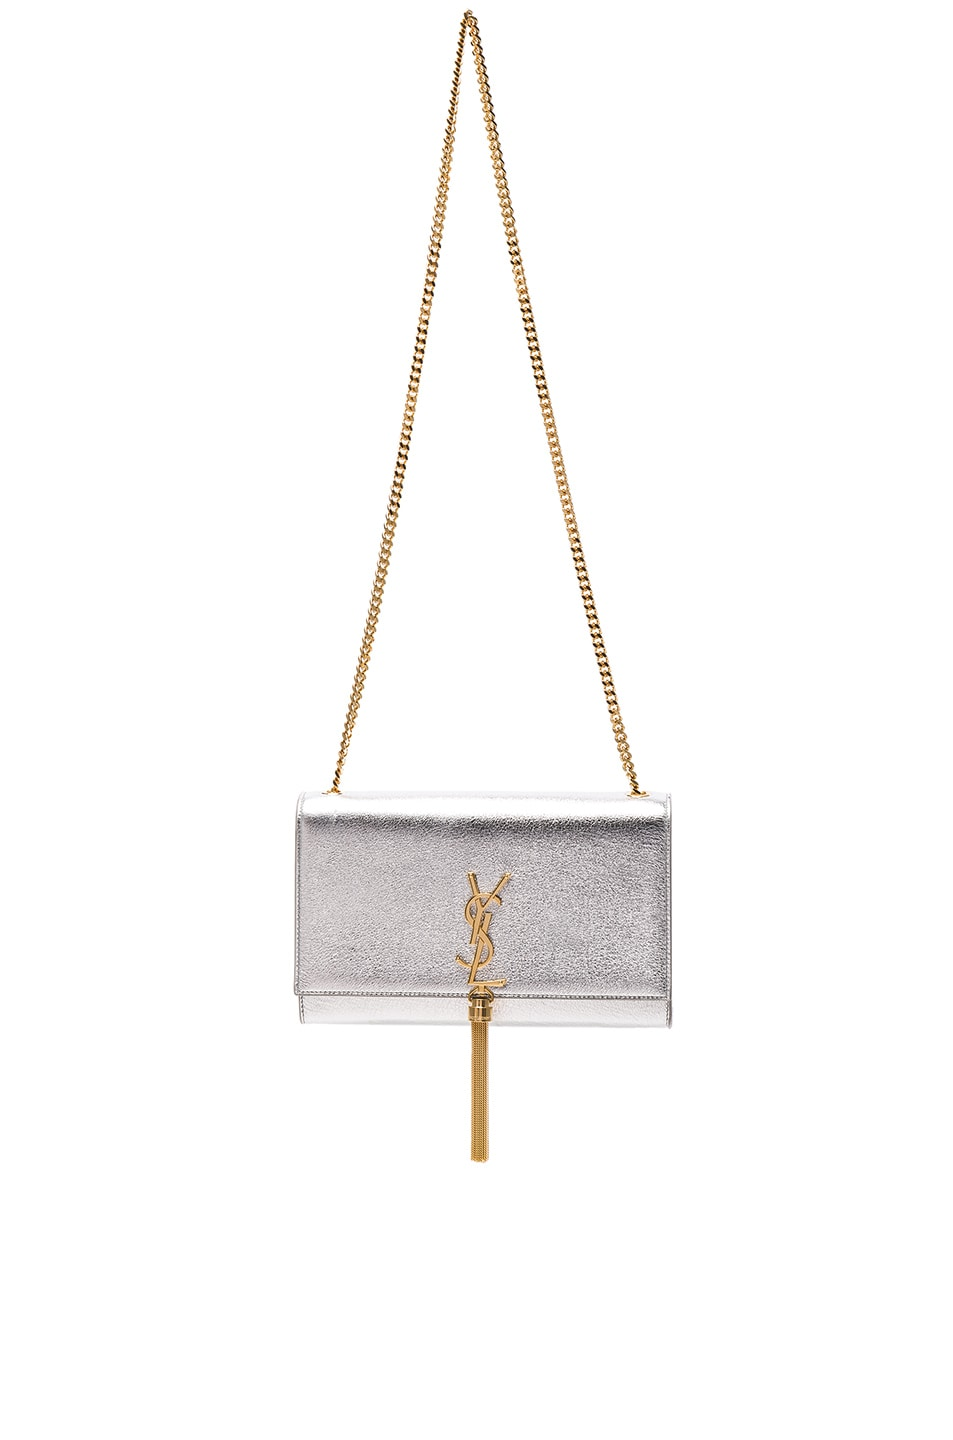 Image 1 of Saint Laurent Medium Monogramme Kate Tassle Chain Bag in Silver